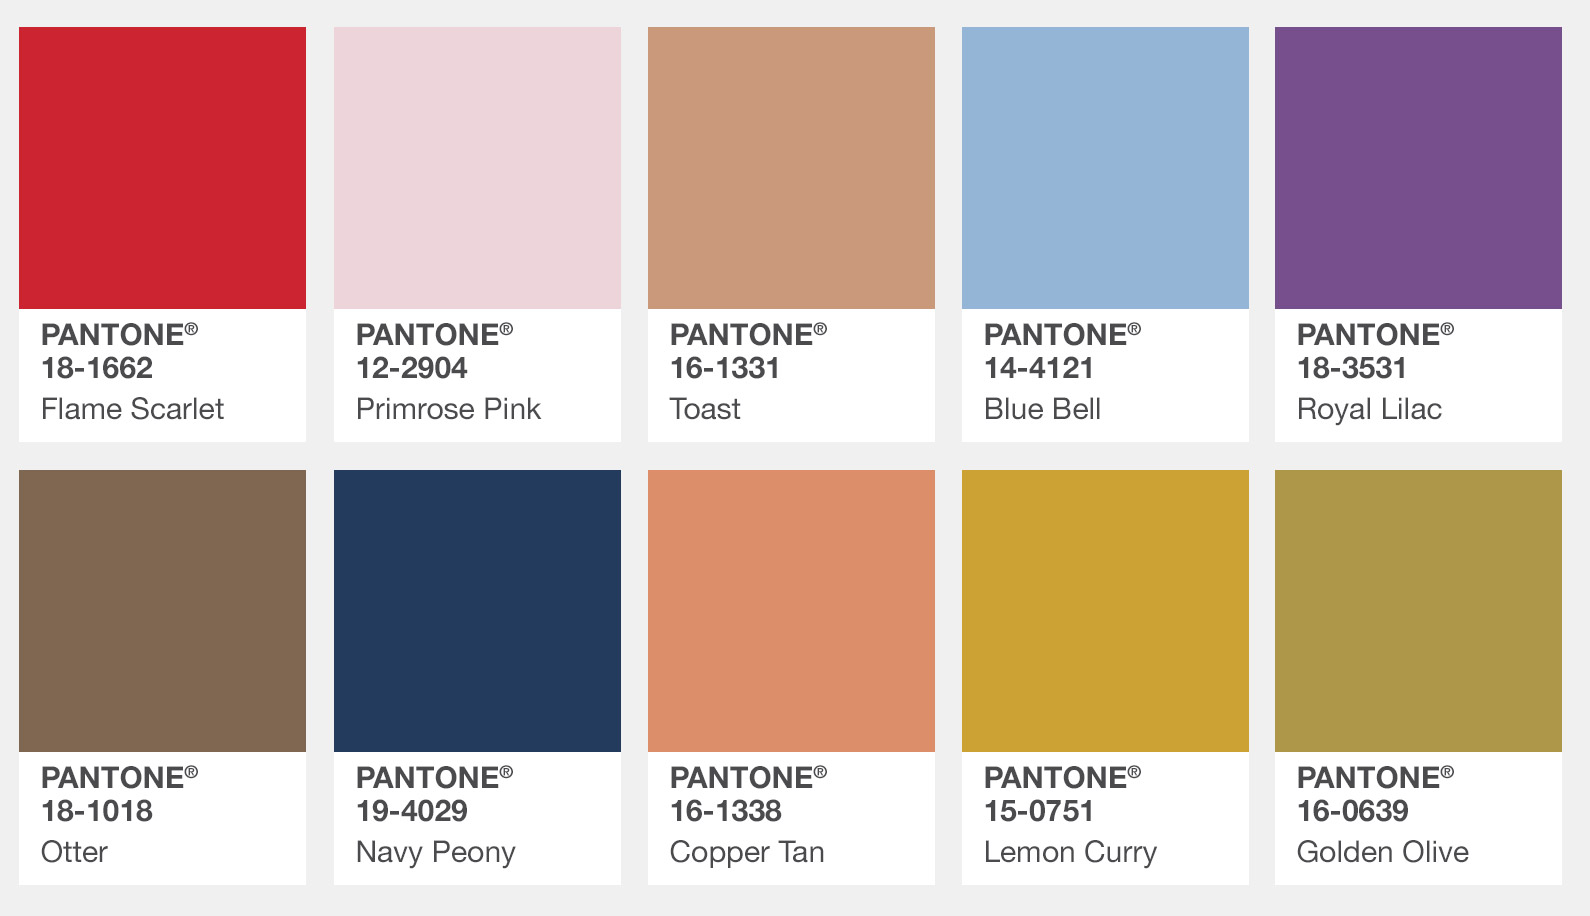 pantone-color-swatches-palette-fashion-color-report-fall-2017-london 2